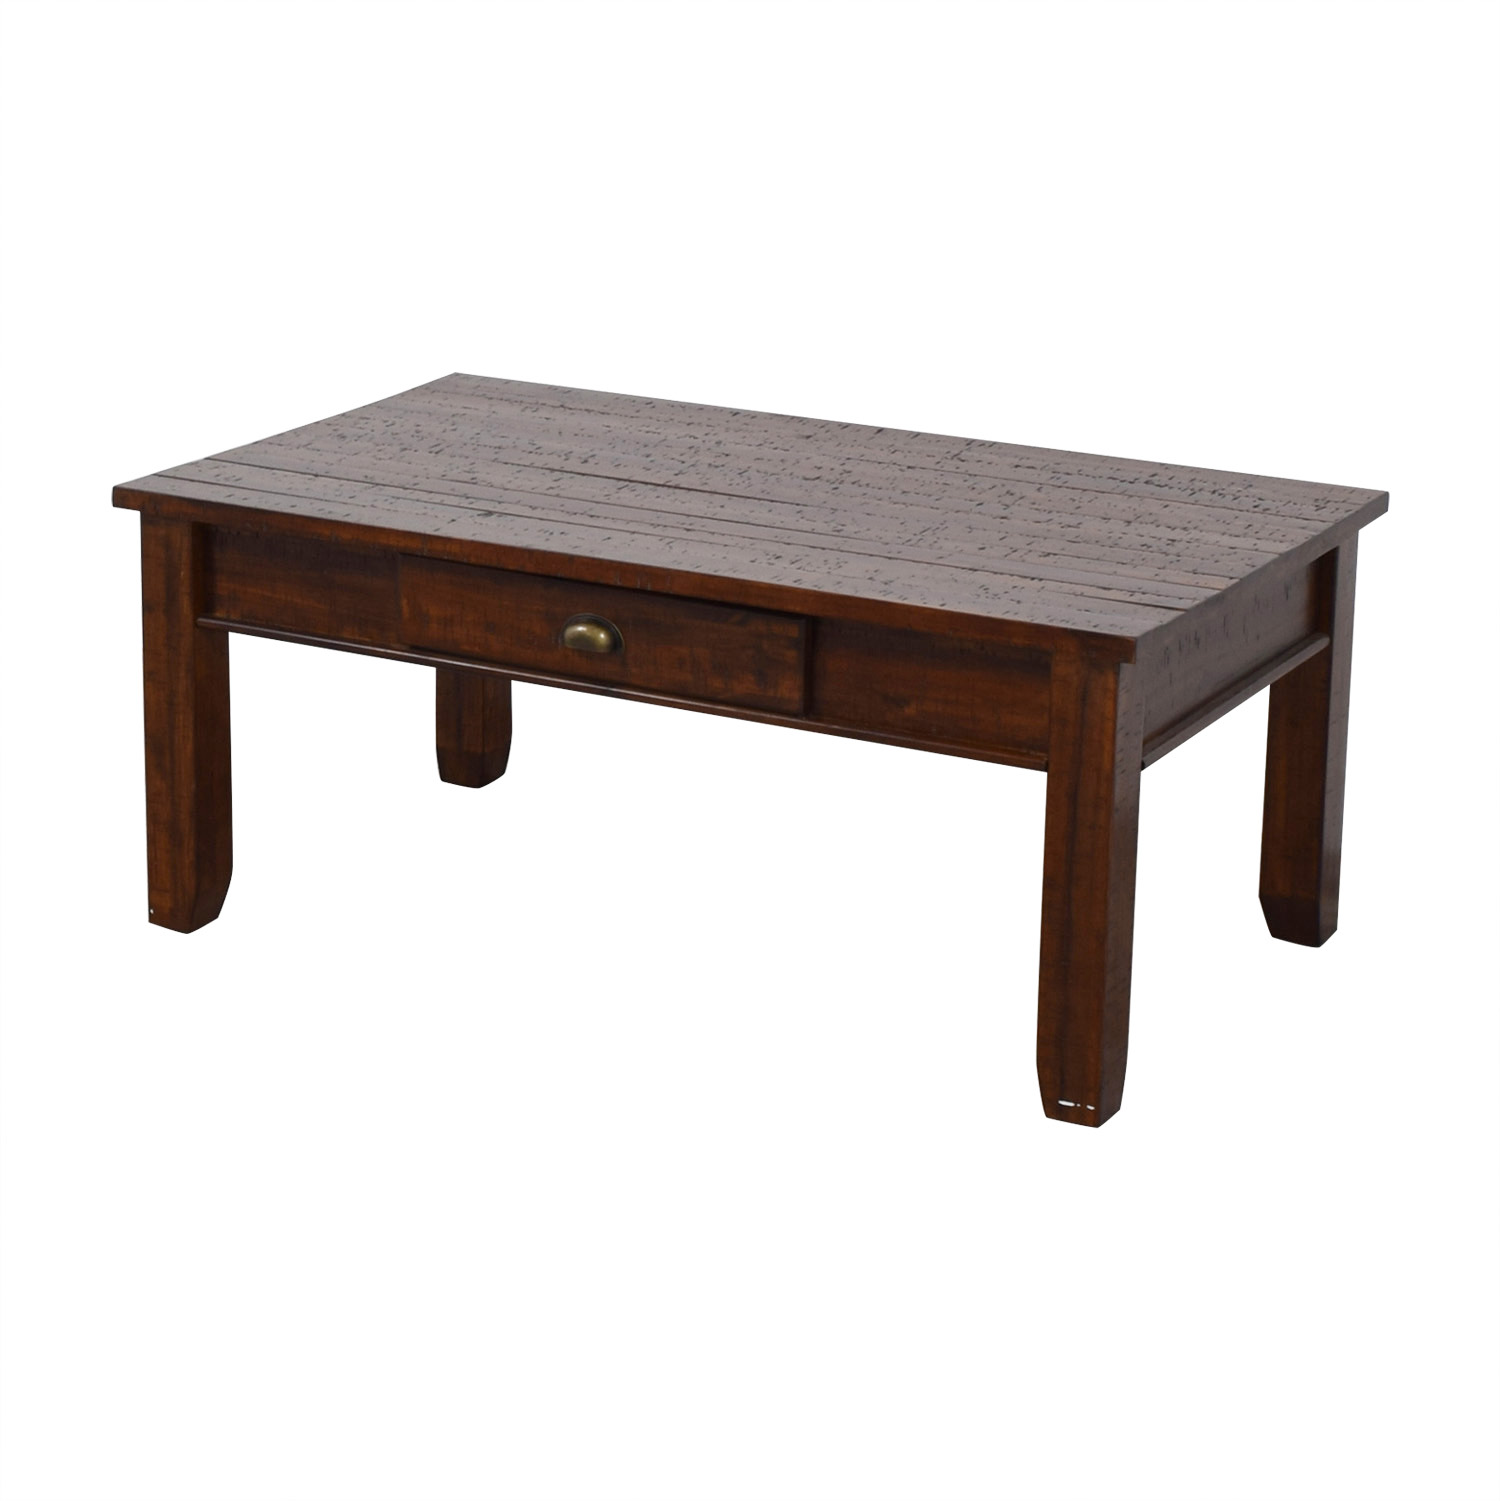 Raymour & Flanigan Raymour & Flanigan Urban Lodge Coffee Table discount